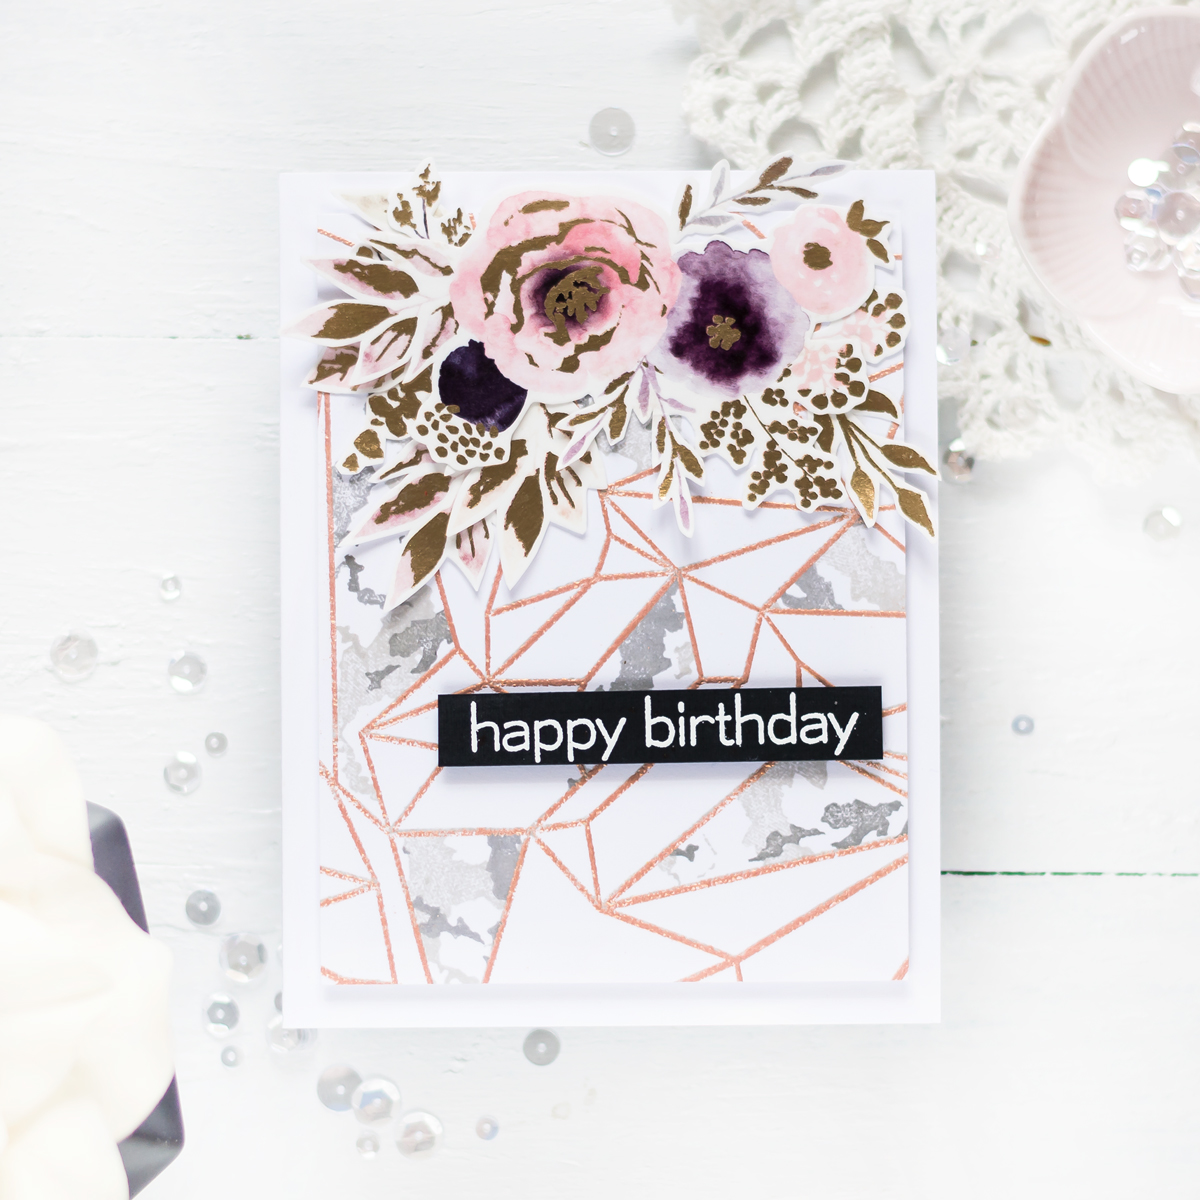 Rose Gold and Marbe Card featuring Altenew Washi Tape and Geometric Landscape Stamp Set. Card by Svitlana Shayevich